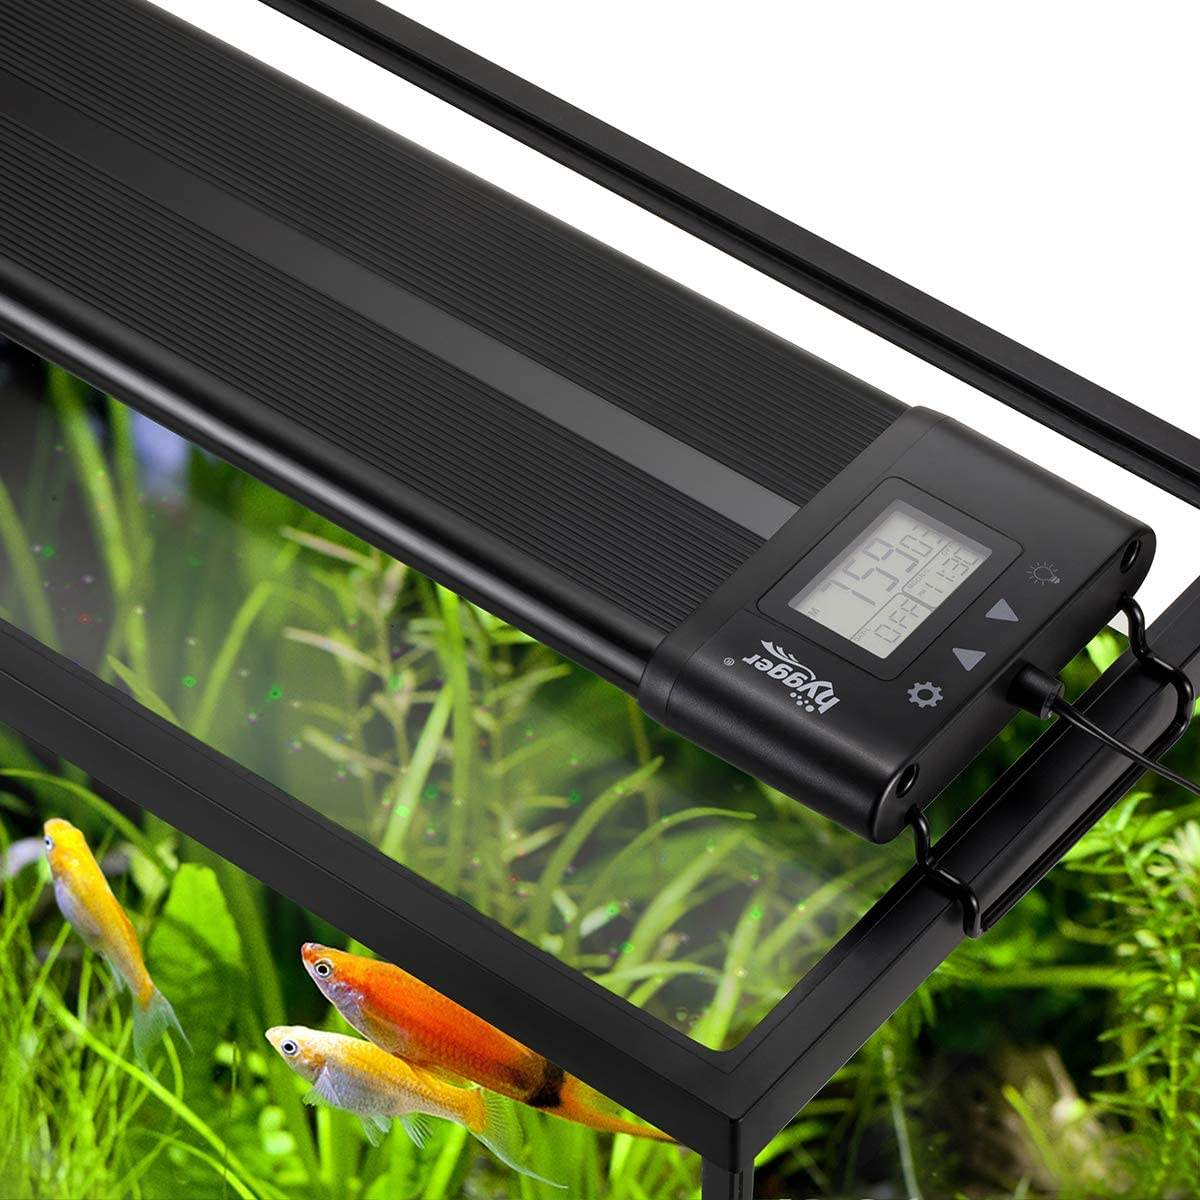 Hygger Auto On Off LED Aquarium Light Extendable 30-36 Inches 7 Colors Full Spectrum Light FixtureためFreshwater BuildでTimer